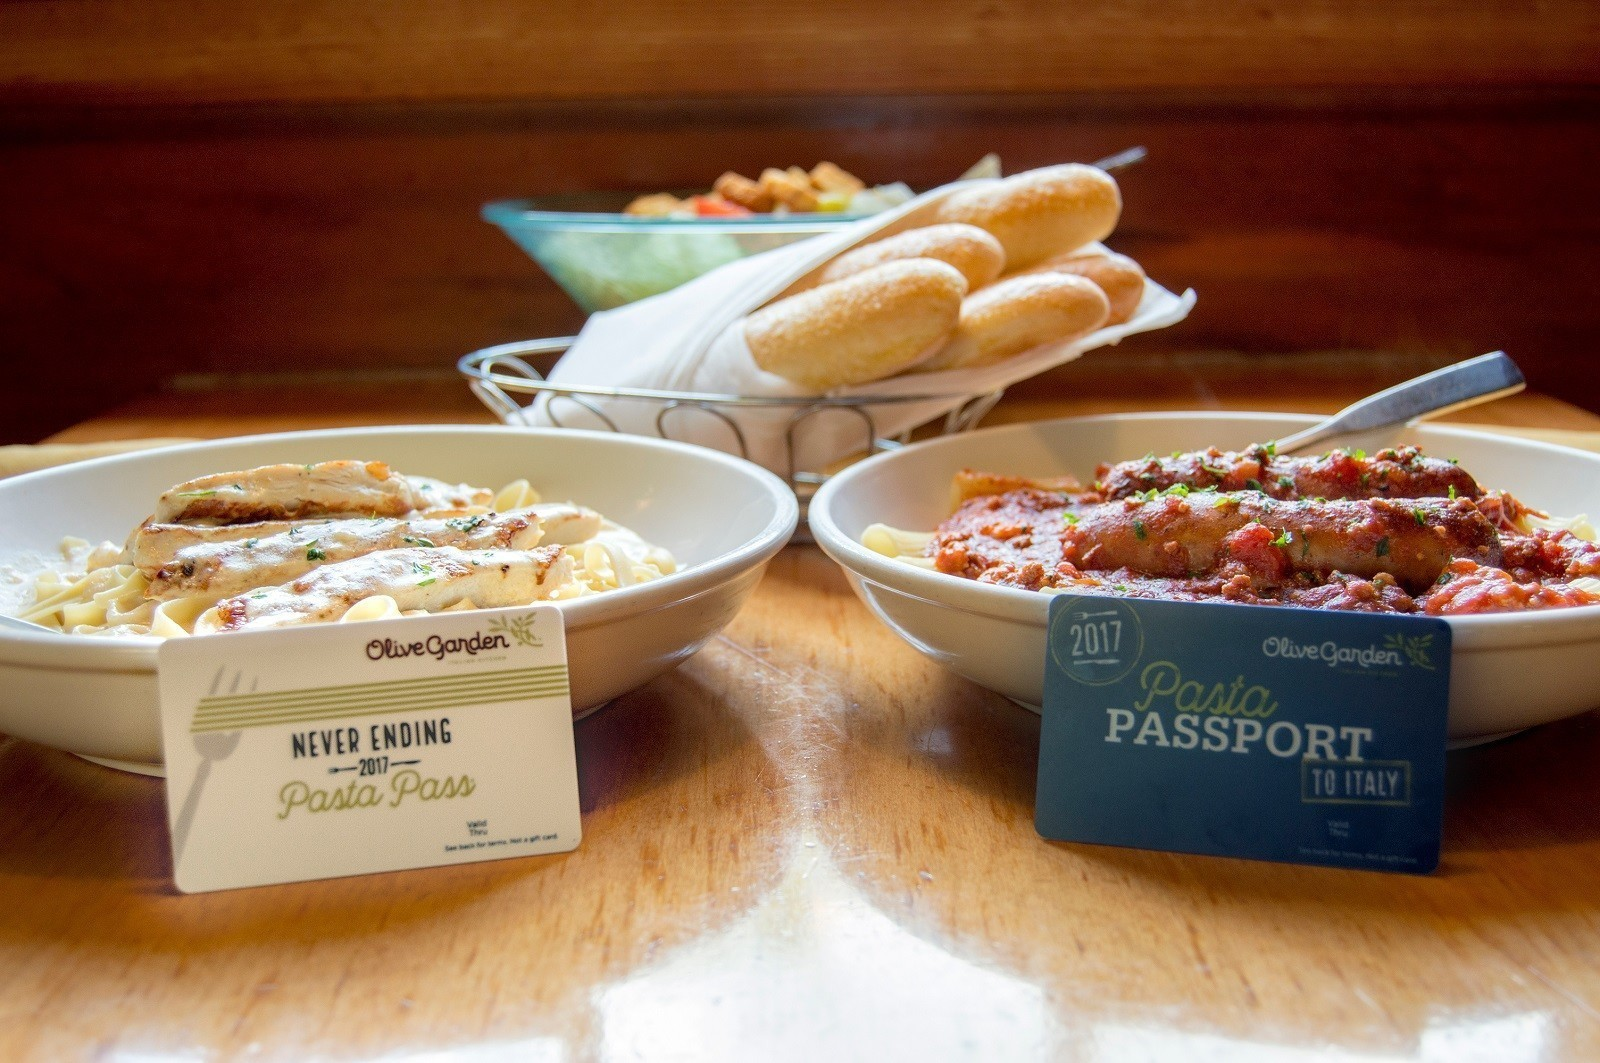 Olive Garden\'s pasta passes sold out in less than 1 second - Chicago ...